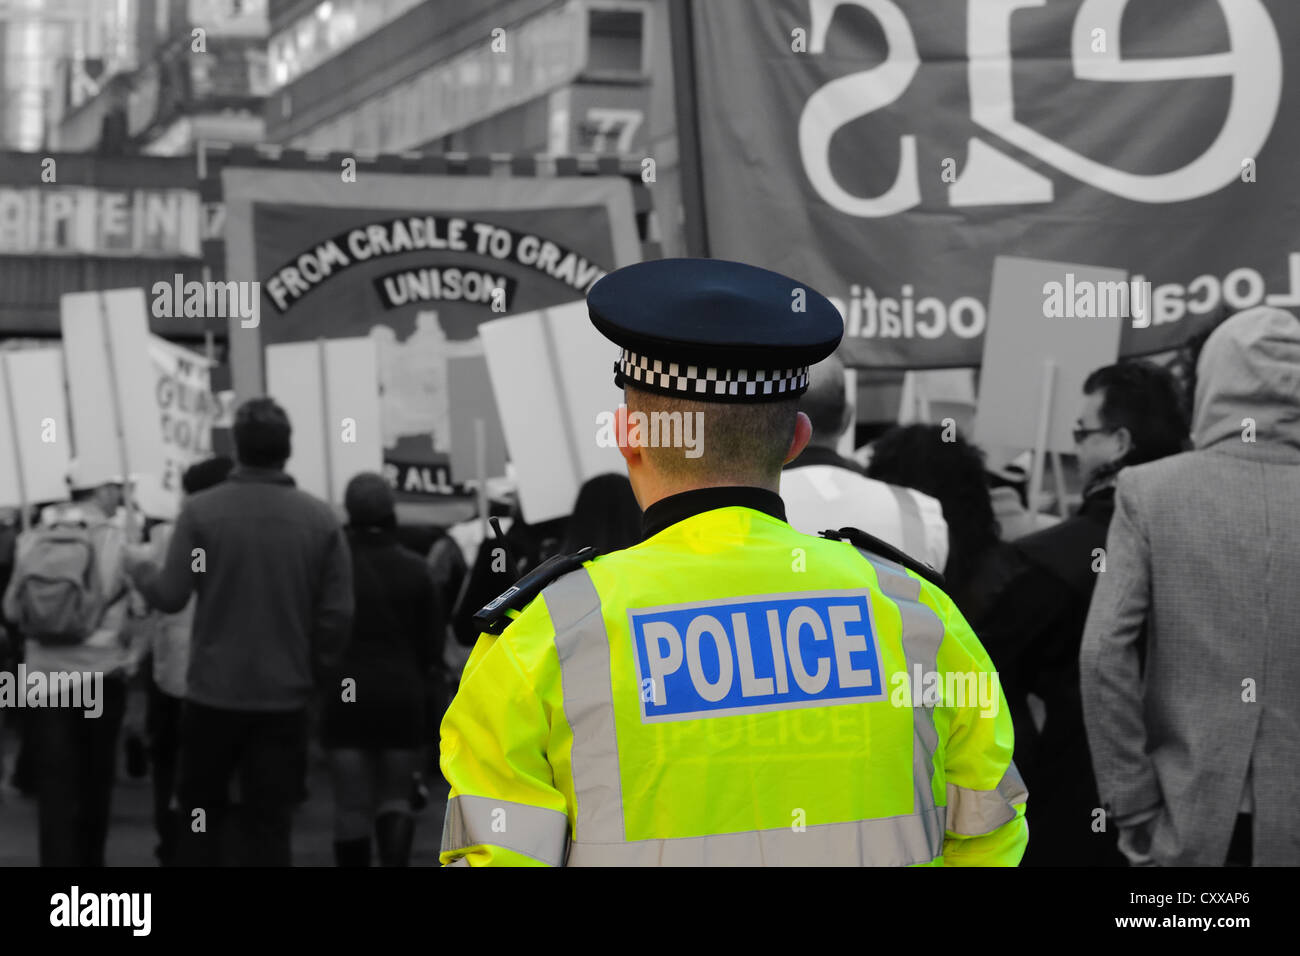 Scottish police constable supervising a political march. Selective colouring technique applied to hi viz jacket. Stock Photo